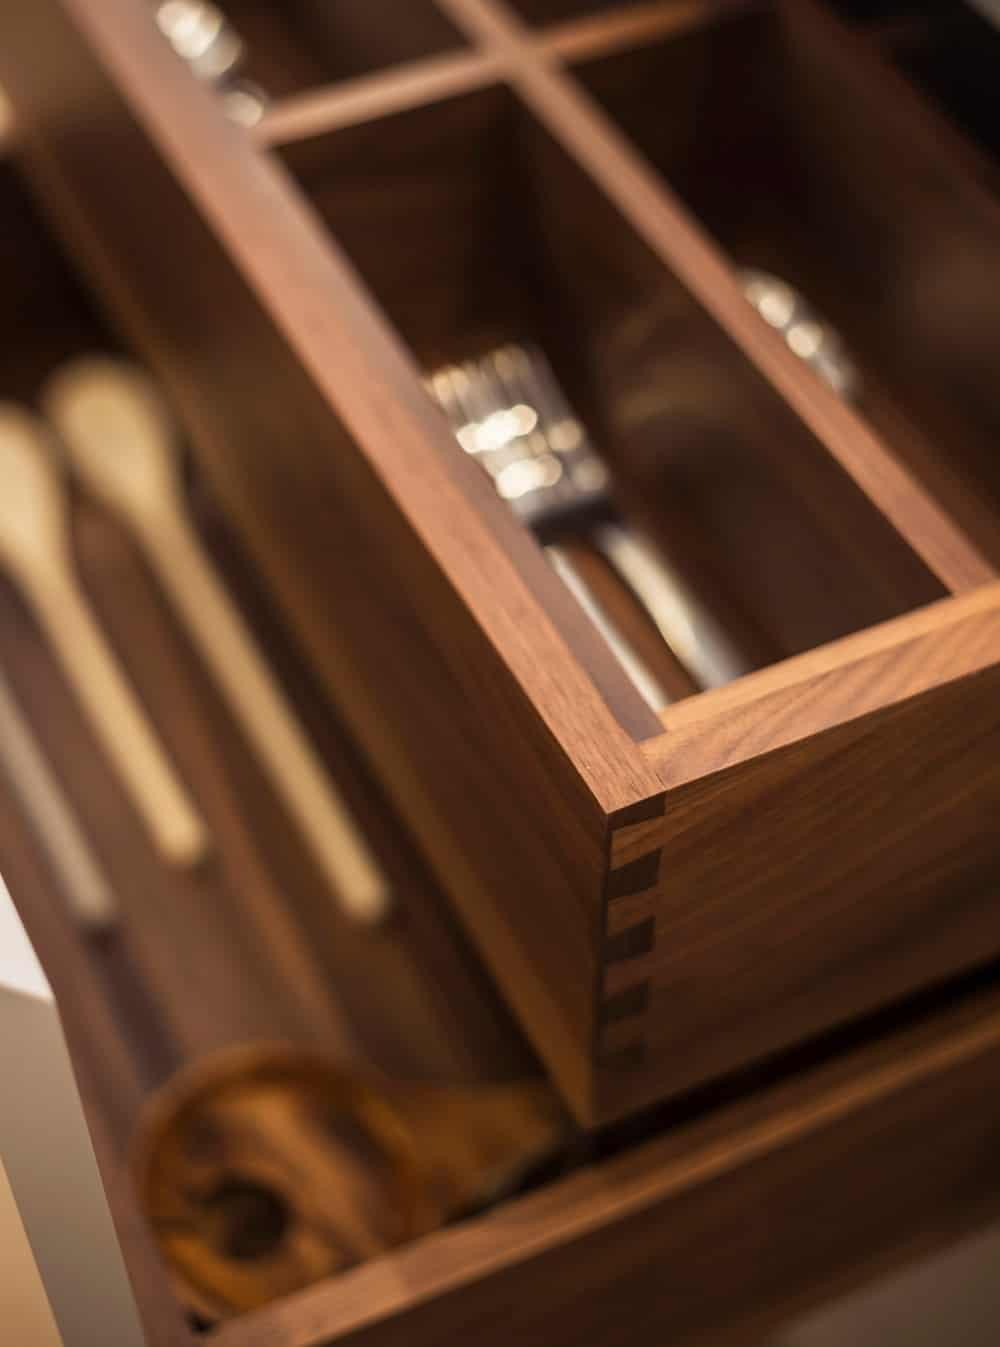 Container of kitchen utensils made out of hardwood. Photo credit: Photography / Styling : Rick Mccullagh / LLI Design